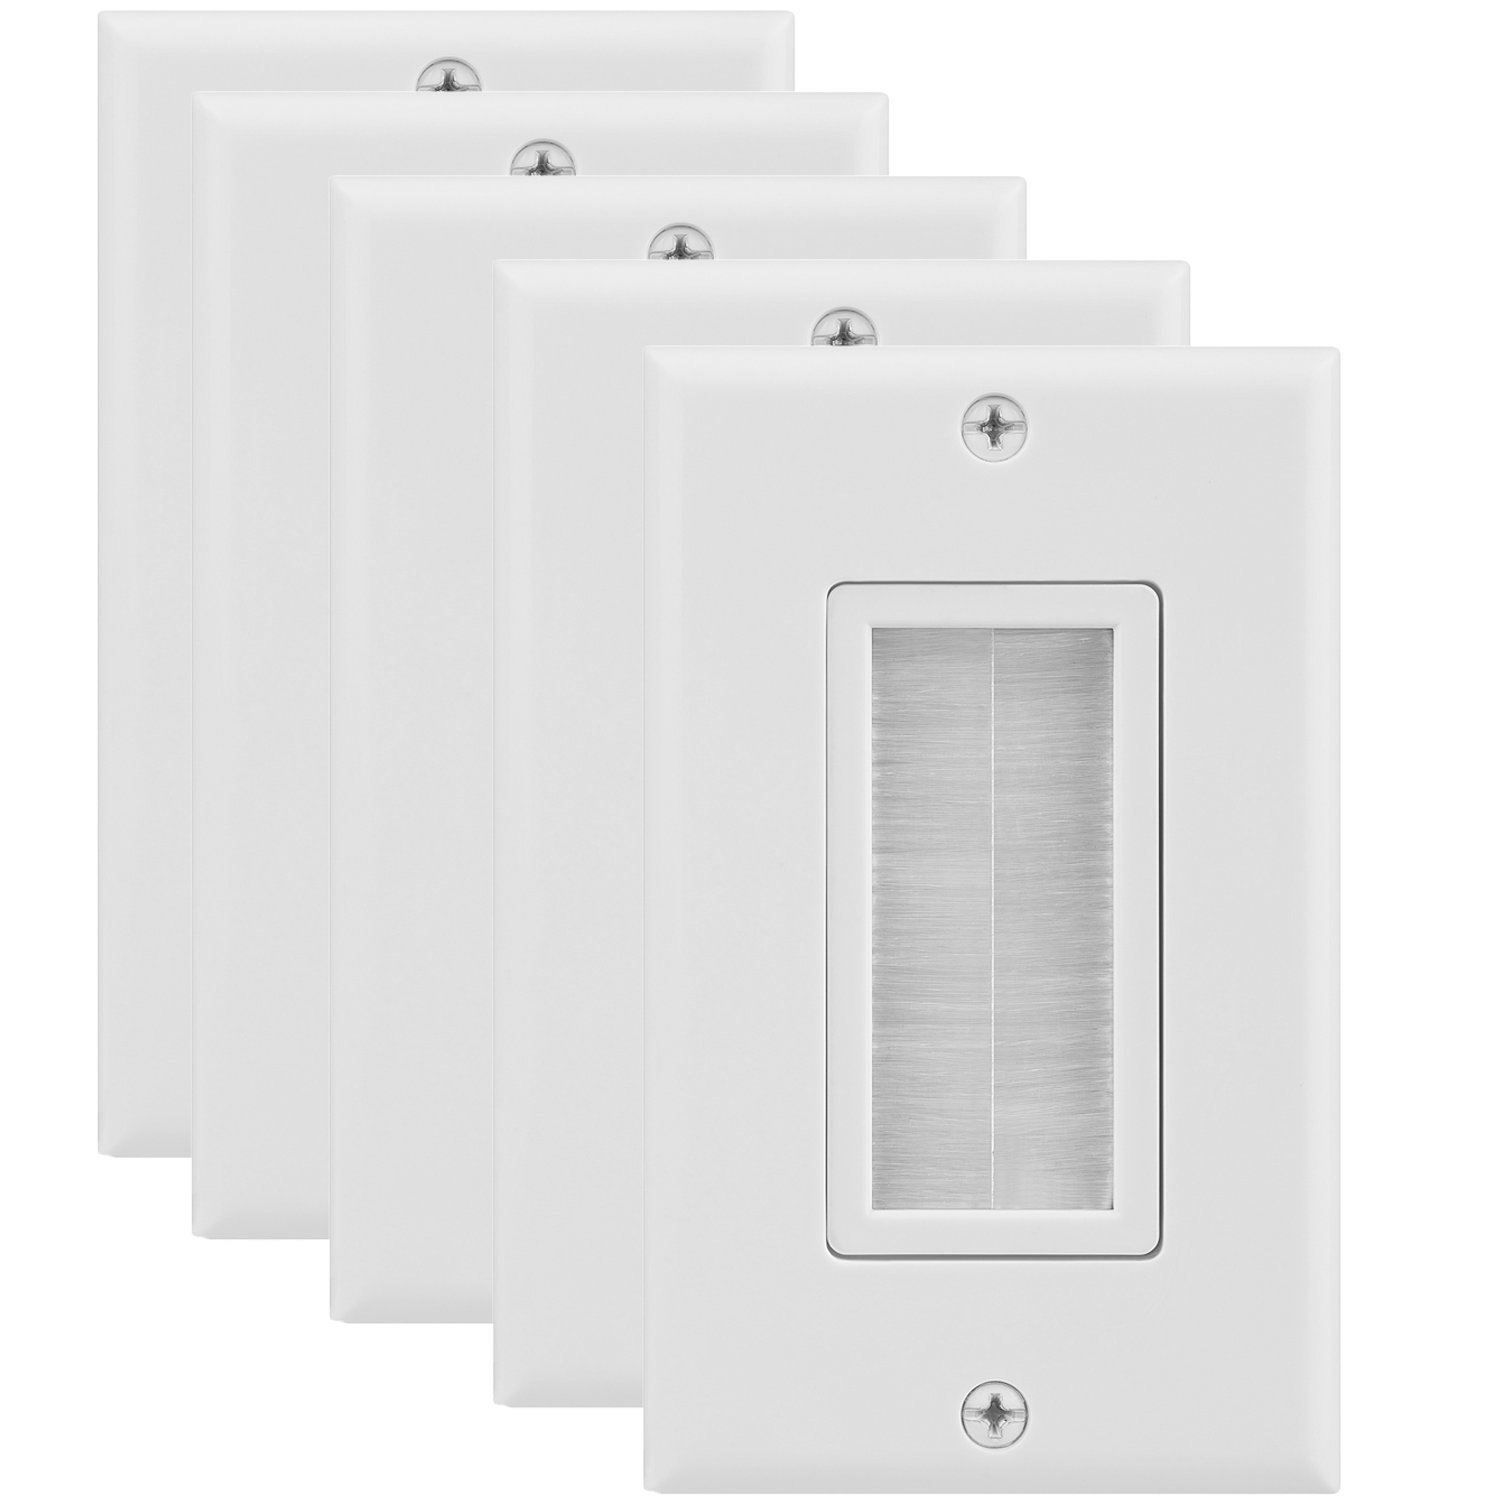 Fosmon 1-Gang Wall Plate (5 Pack), Brush Style Opening Passthrough Low Voltage Cable Plate in-Wall Installation for Speaker Wires, Coaxial Cables, HDMI Cables, or Network/Phone Cables by Fosmon